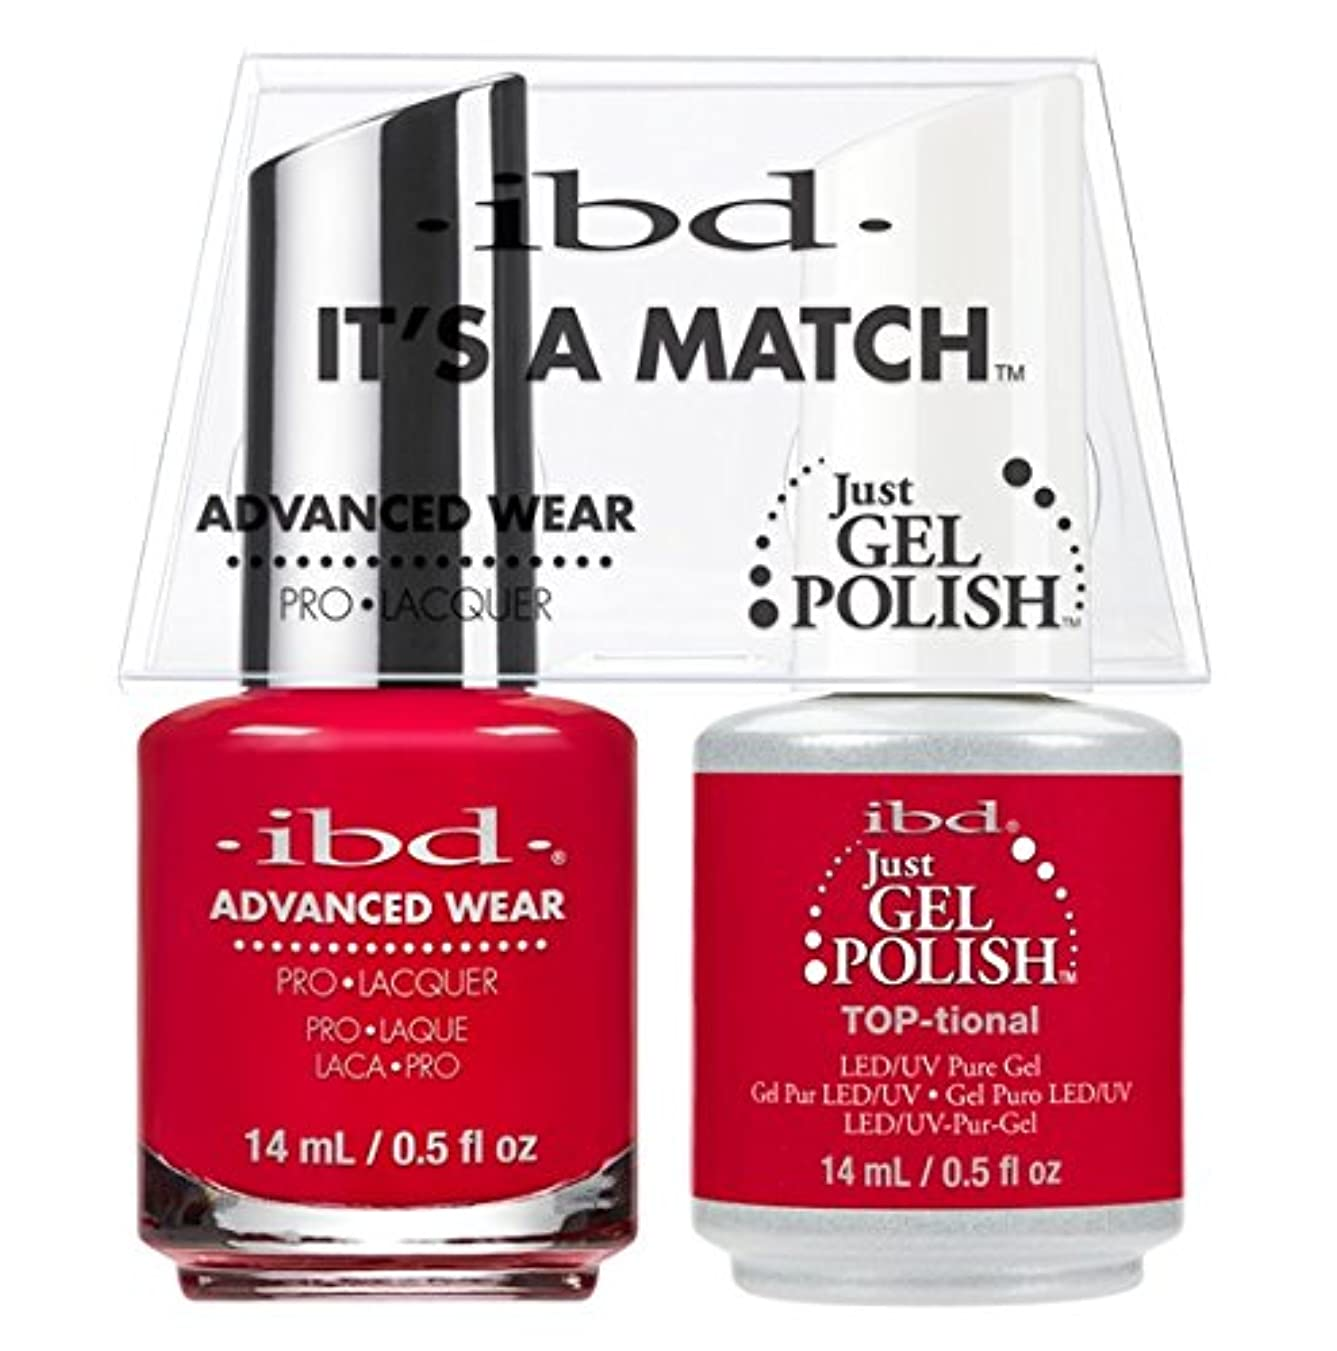 ibd - It's A Match -Duo Pack- TOP-tional - 14 mL / 0.5 oz Each